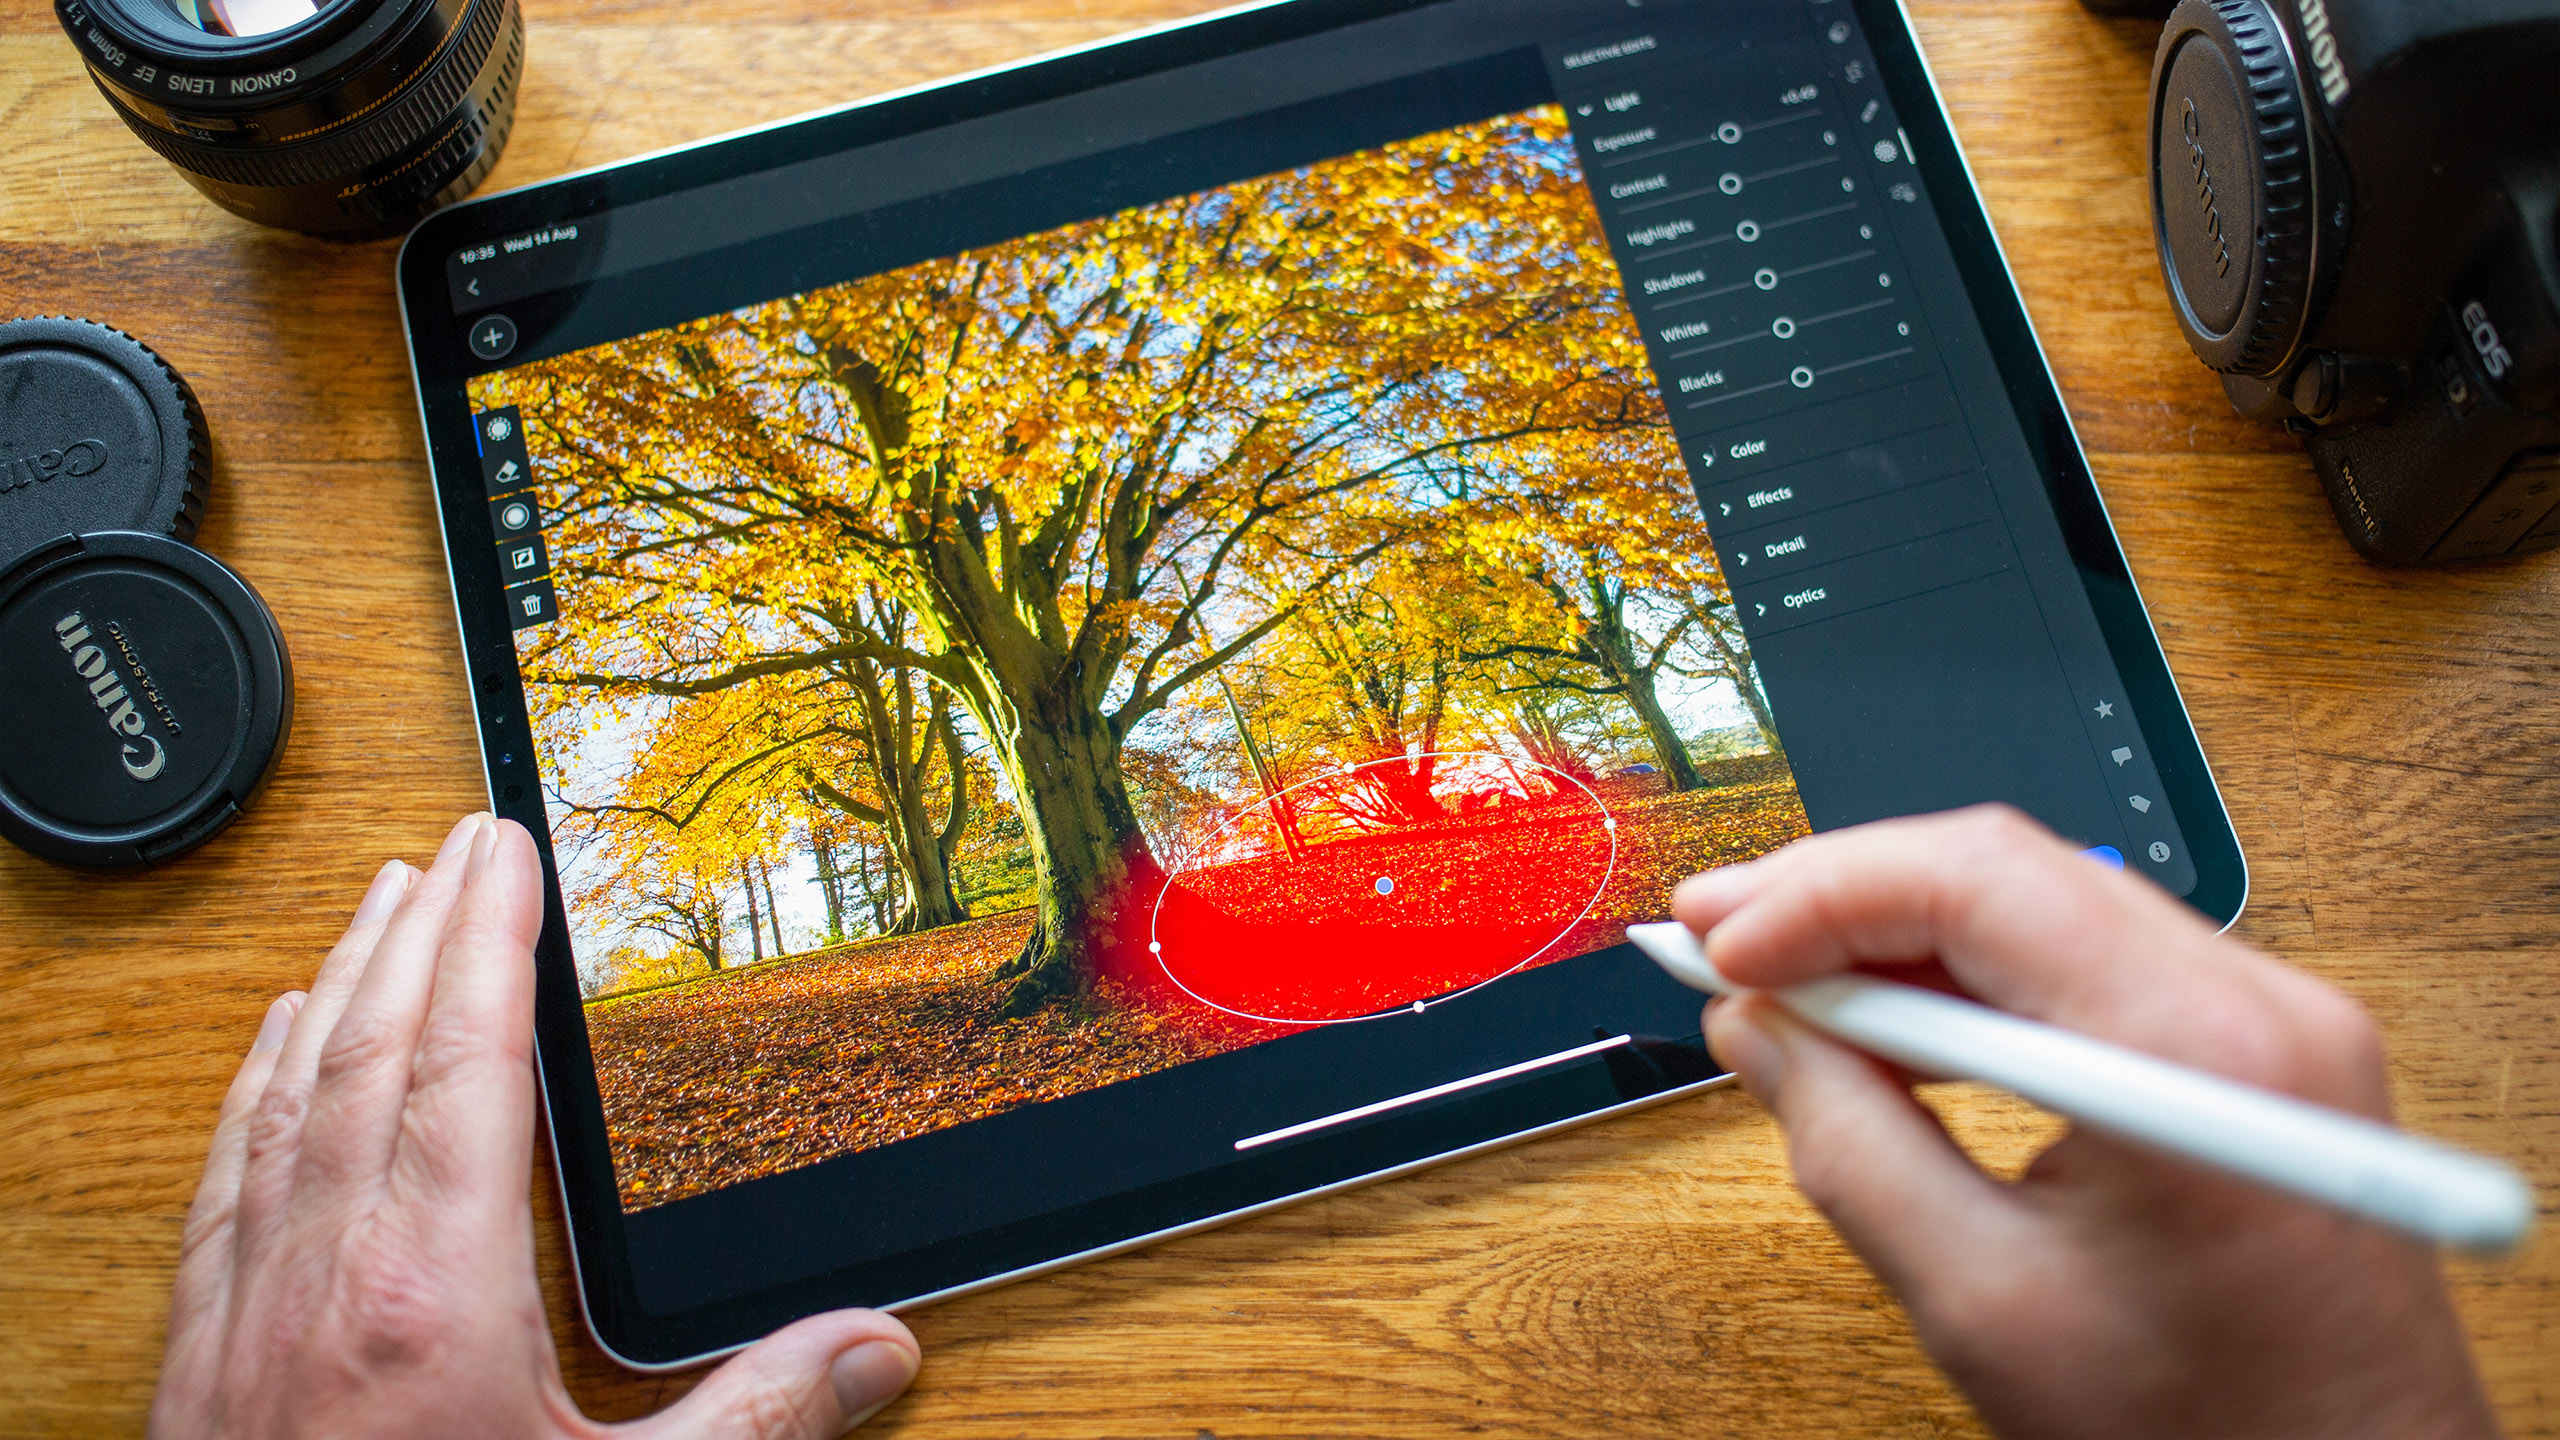 BATH, UNITED KINGDOM - AUGUST 14, 2019 : Close up of someone using an iPad Pro running the Adobe Lightroom App to make selective adjustment to a photograph of colourful trees.